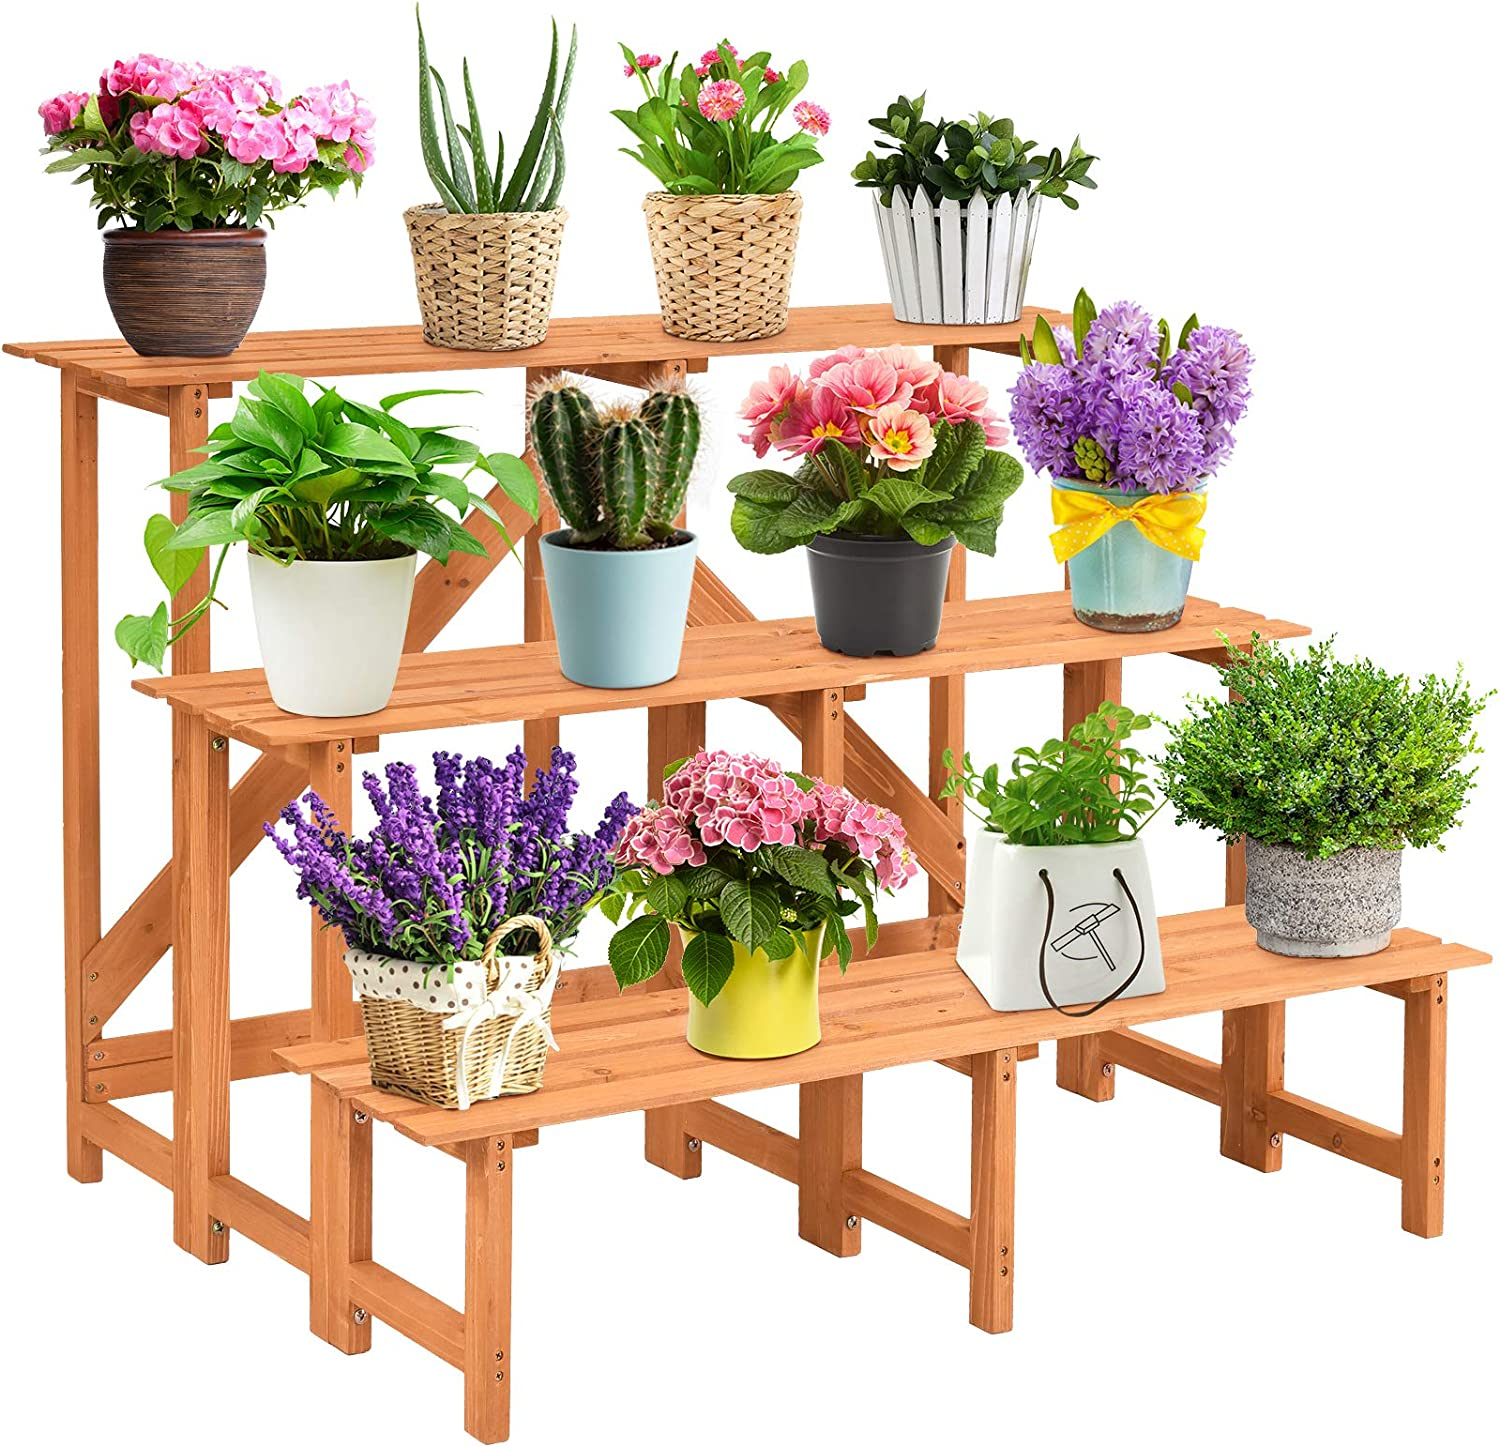 Giantex 3 Tier Plant Stand Flower Pot Holder Wide Display Rack Stand With Step Design Yellow Garden Outdoor